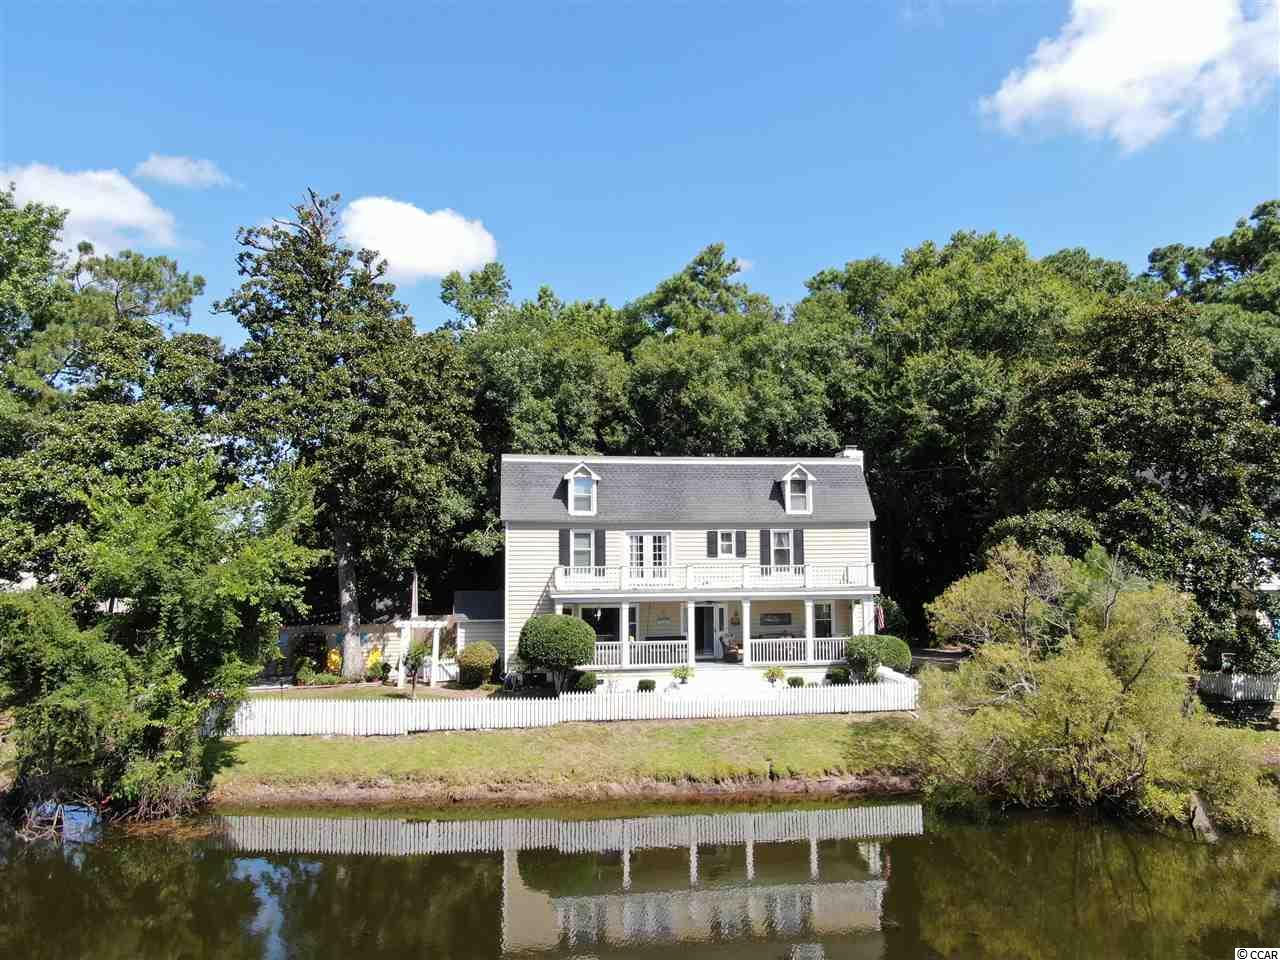 """Incredible opportunity to reside in one of the most popular communities in Murrells Inlet! If you don't know about Mt Gilead.. you need to ! Oozing with charm and an abundance of lake frontage, this unique abode has it all. 735 Mallard Pond road hugs the lake and is situated at the end of a dead end road offering immense privacy and no through-traffic. Features / Upgrades include over 3,000 square feet of living space, a detached garage ( that could also be used as a work shop ), a multi-level guest suite with office ( Could also be used as a 4th bedroom, hardwood flooring, ships lap accents, and so much more.  Whether you are relaxing on the porch with your mimosa or manicuring your waterfront garden.. you will undoubtedly be referring to your new home as 'Paradise """" ."""